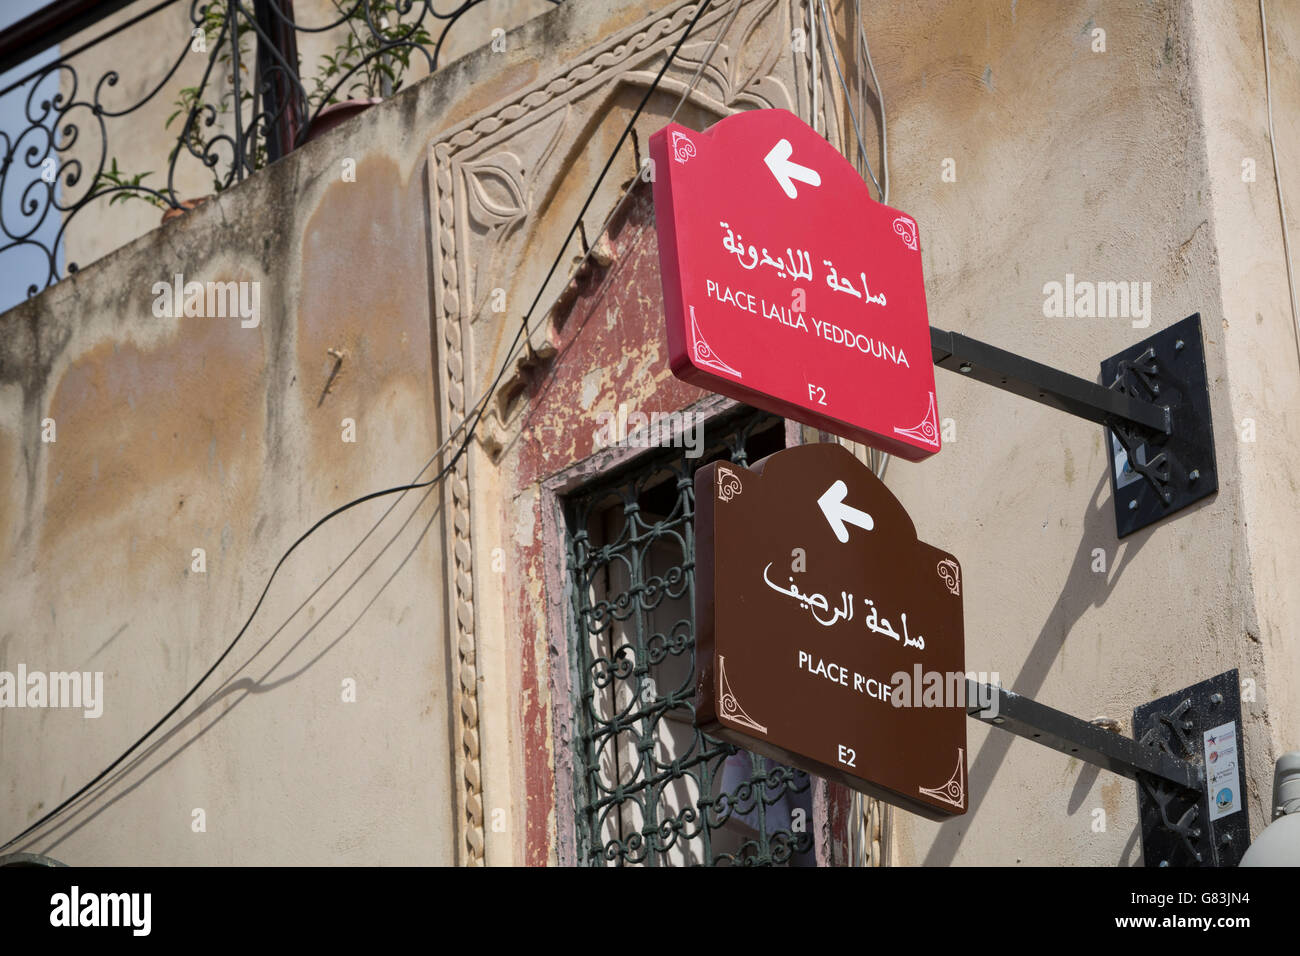 Directional signs for self-guided walking tours help guide tourists in the old Medina of Fez, Morocco - Stock Image